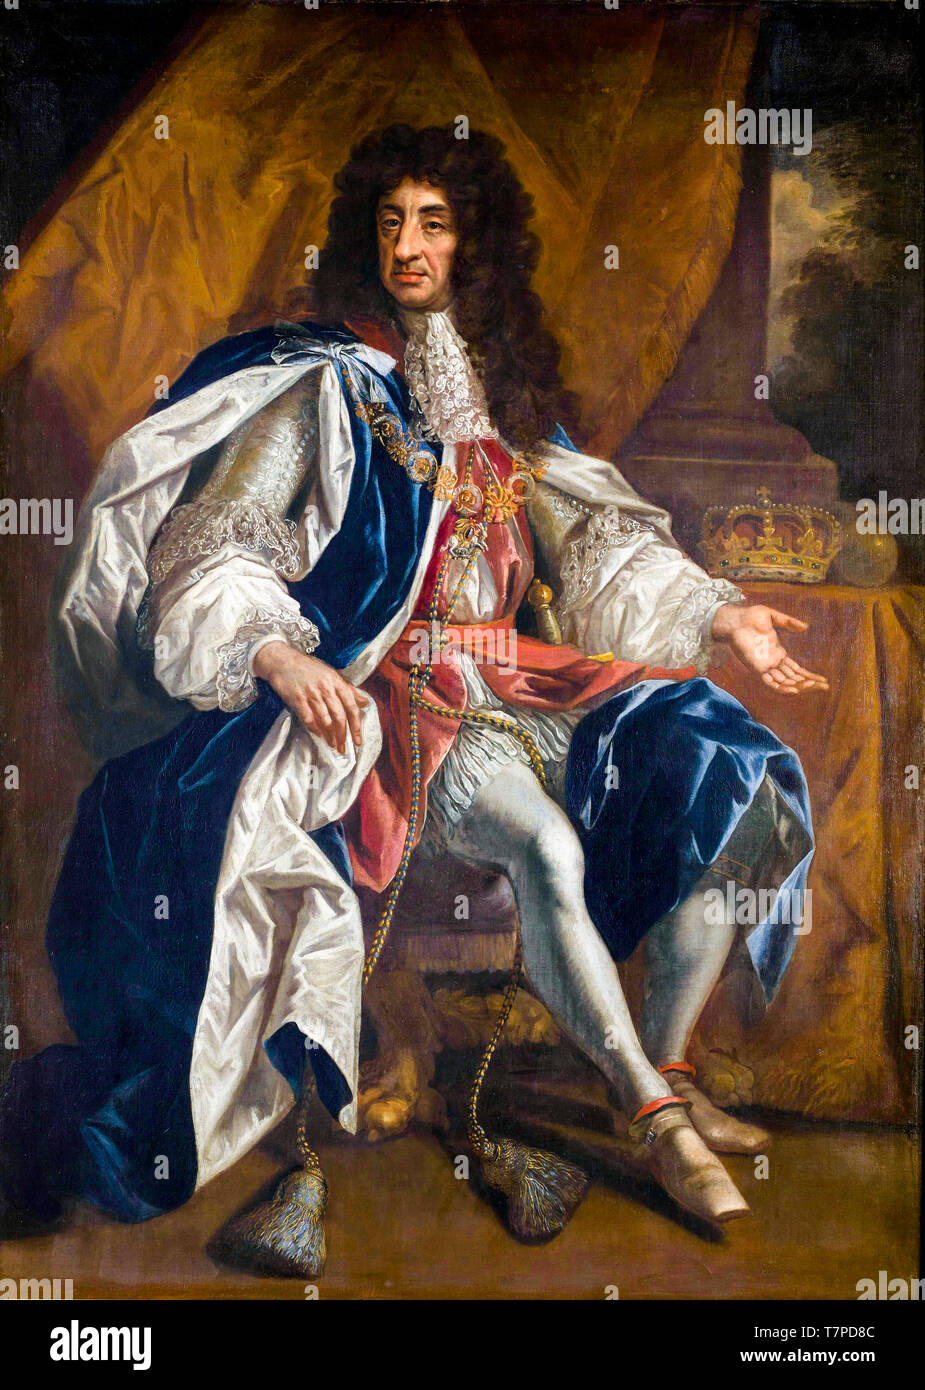 King Charles II of England, painting by Thomas Hawker, after 1660 - Stock Image